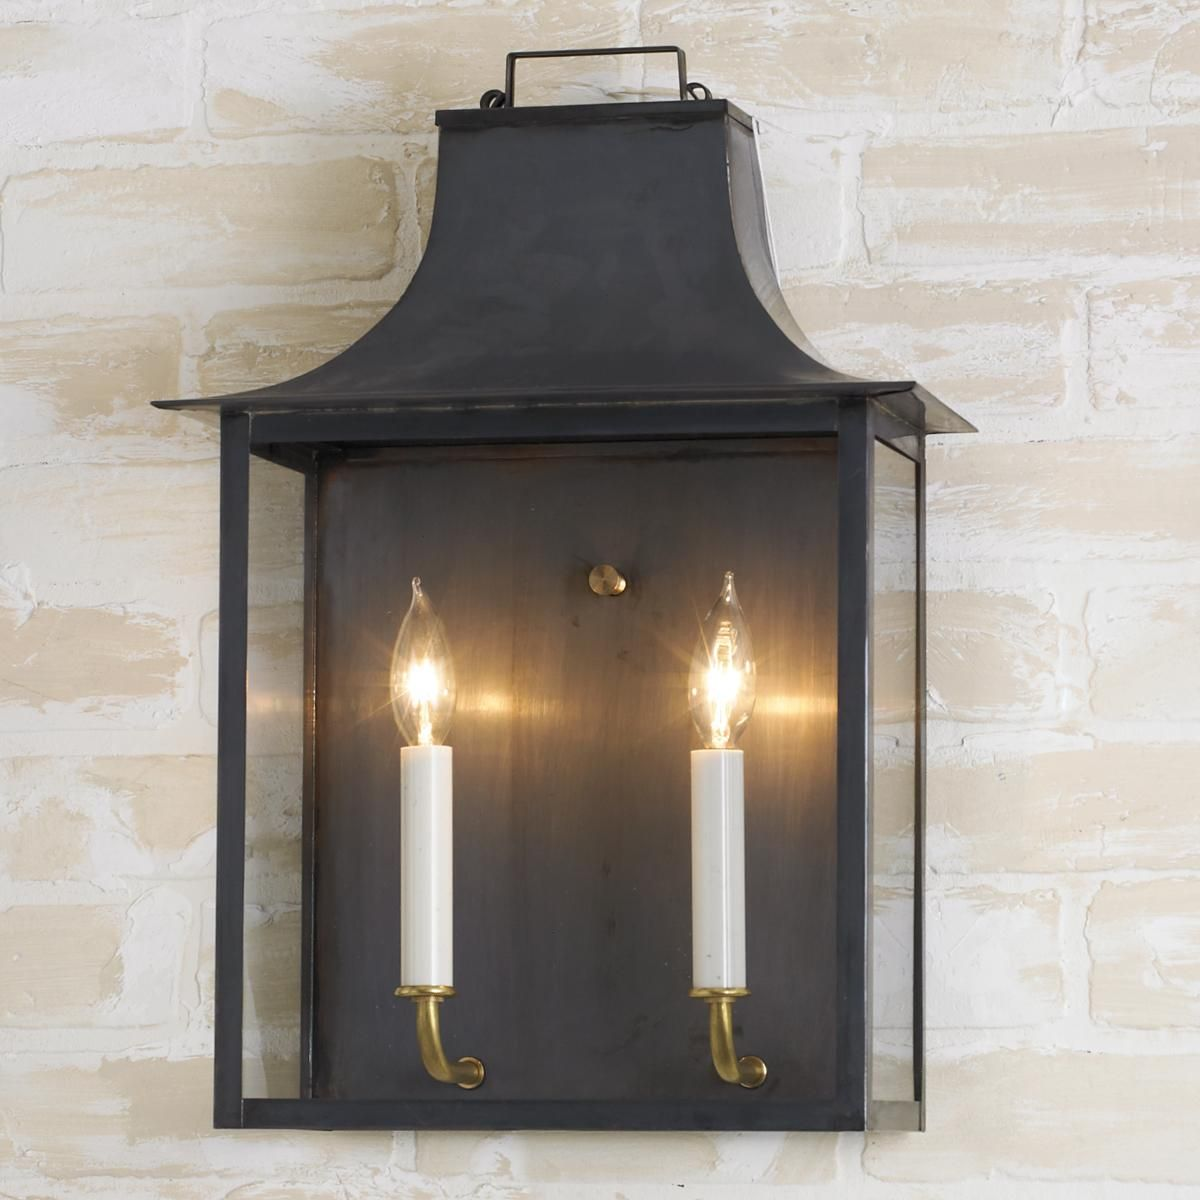 Georgian outdoor wall light 2 light outdoor walls - Georgian style exterior lighting ...